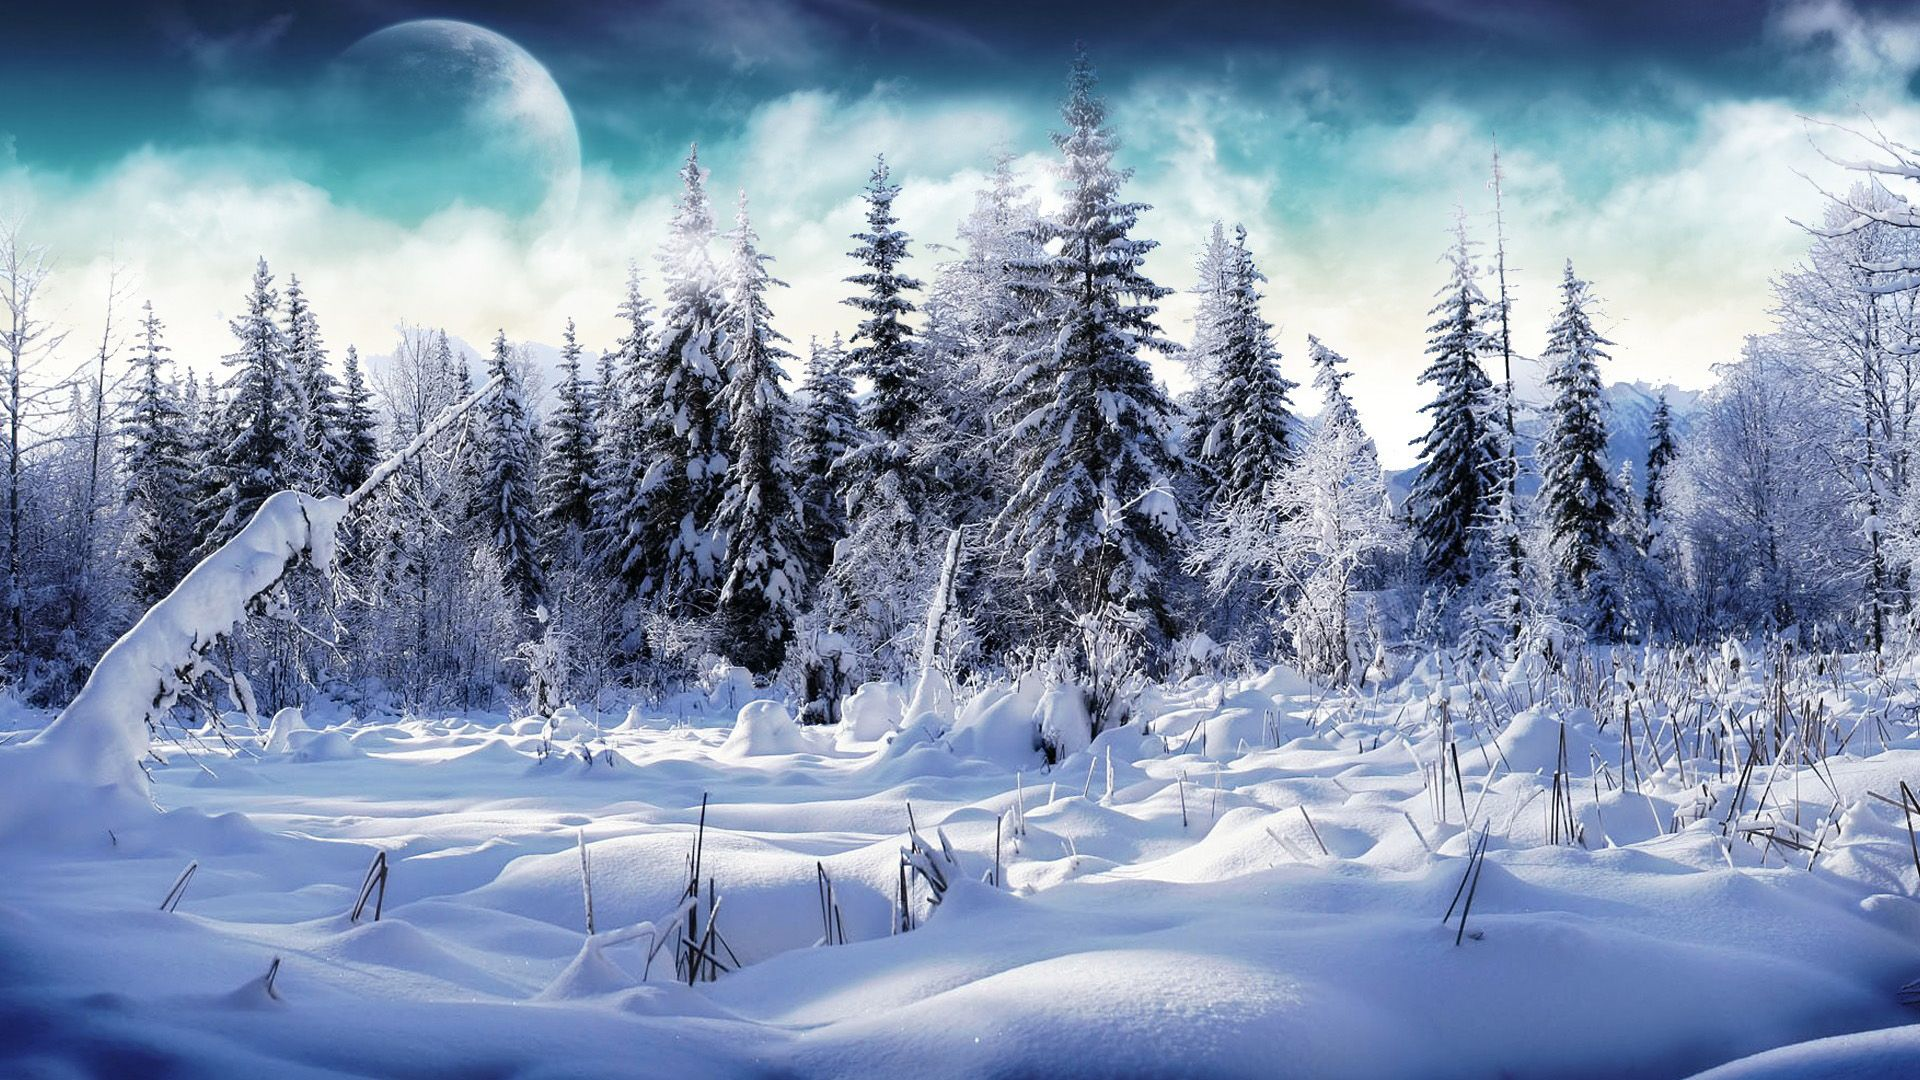 Snow Wallpapers High Definition On Wallpaper 1080p Hd In 2020 Winter Scenery Winter Landscape Winter Pictures